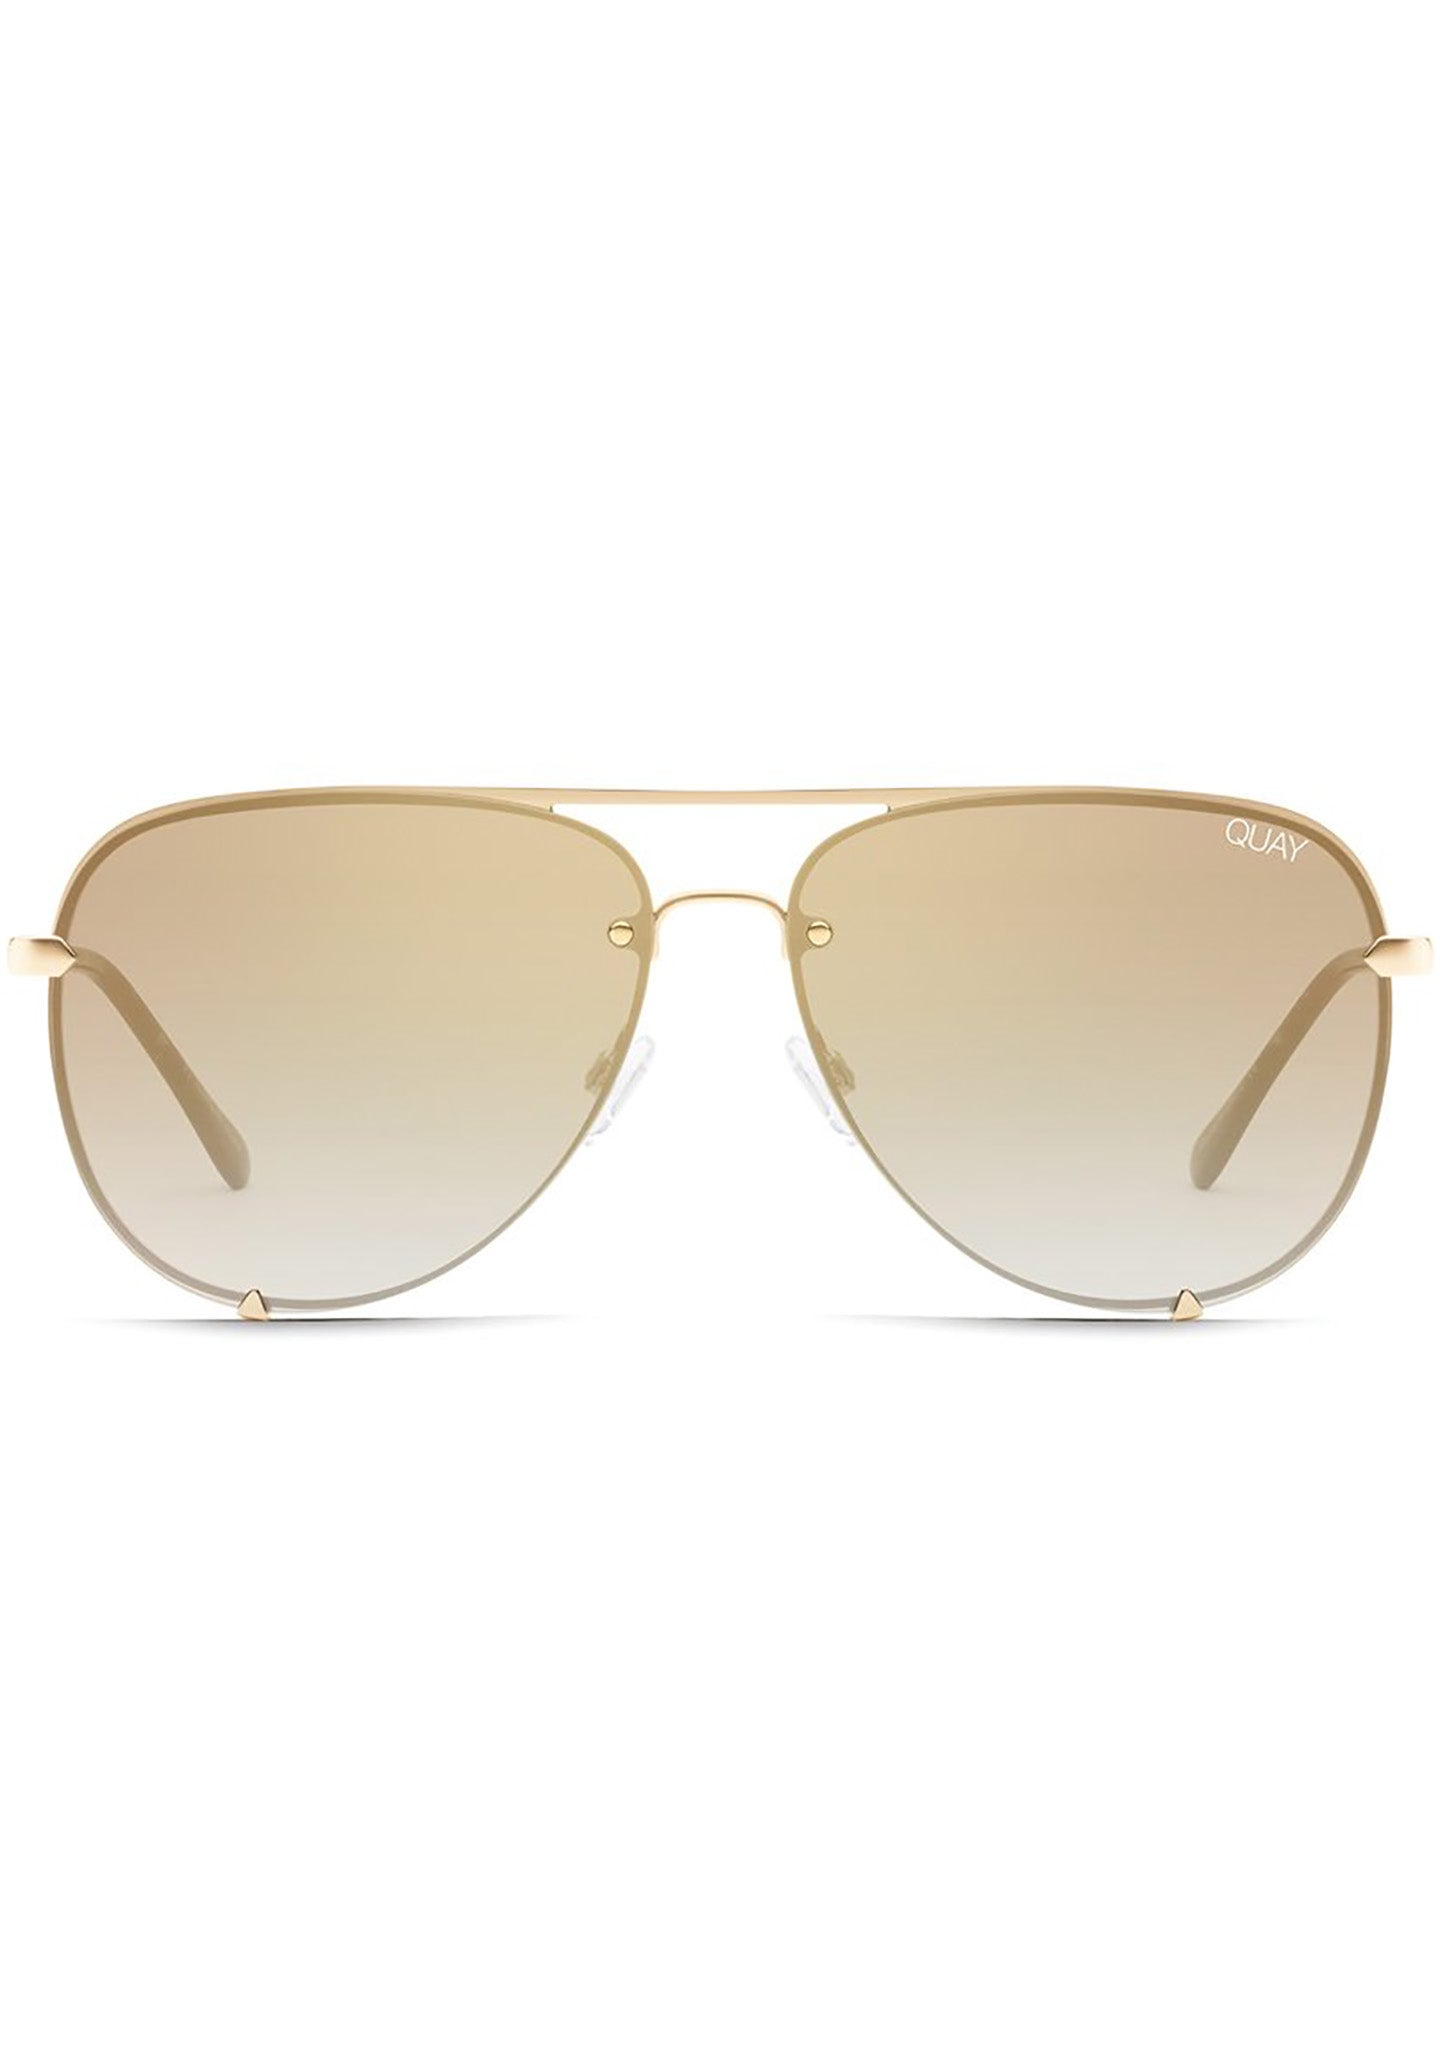 High Key Rimless Sunglasses in Gold Brown